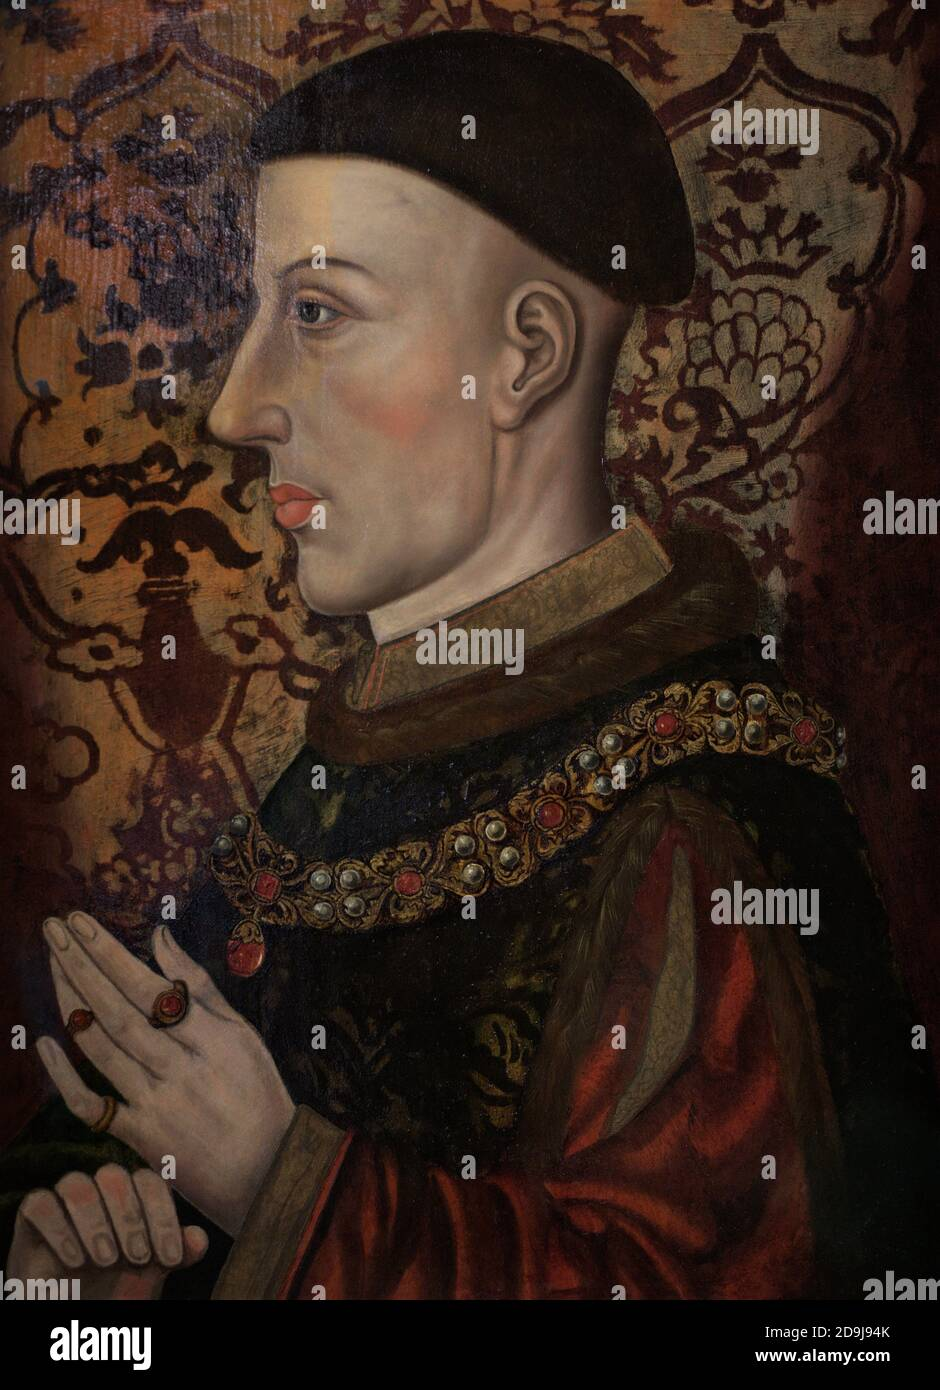 Henry V (c.1387-1422) king of England from 1413 until 1422. Portrait by an unidentified artist. Oil on panel. Late 16th century-Early 17th century. National Portrait Gallery. London, England, United Kingdom. Stock Photo